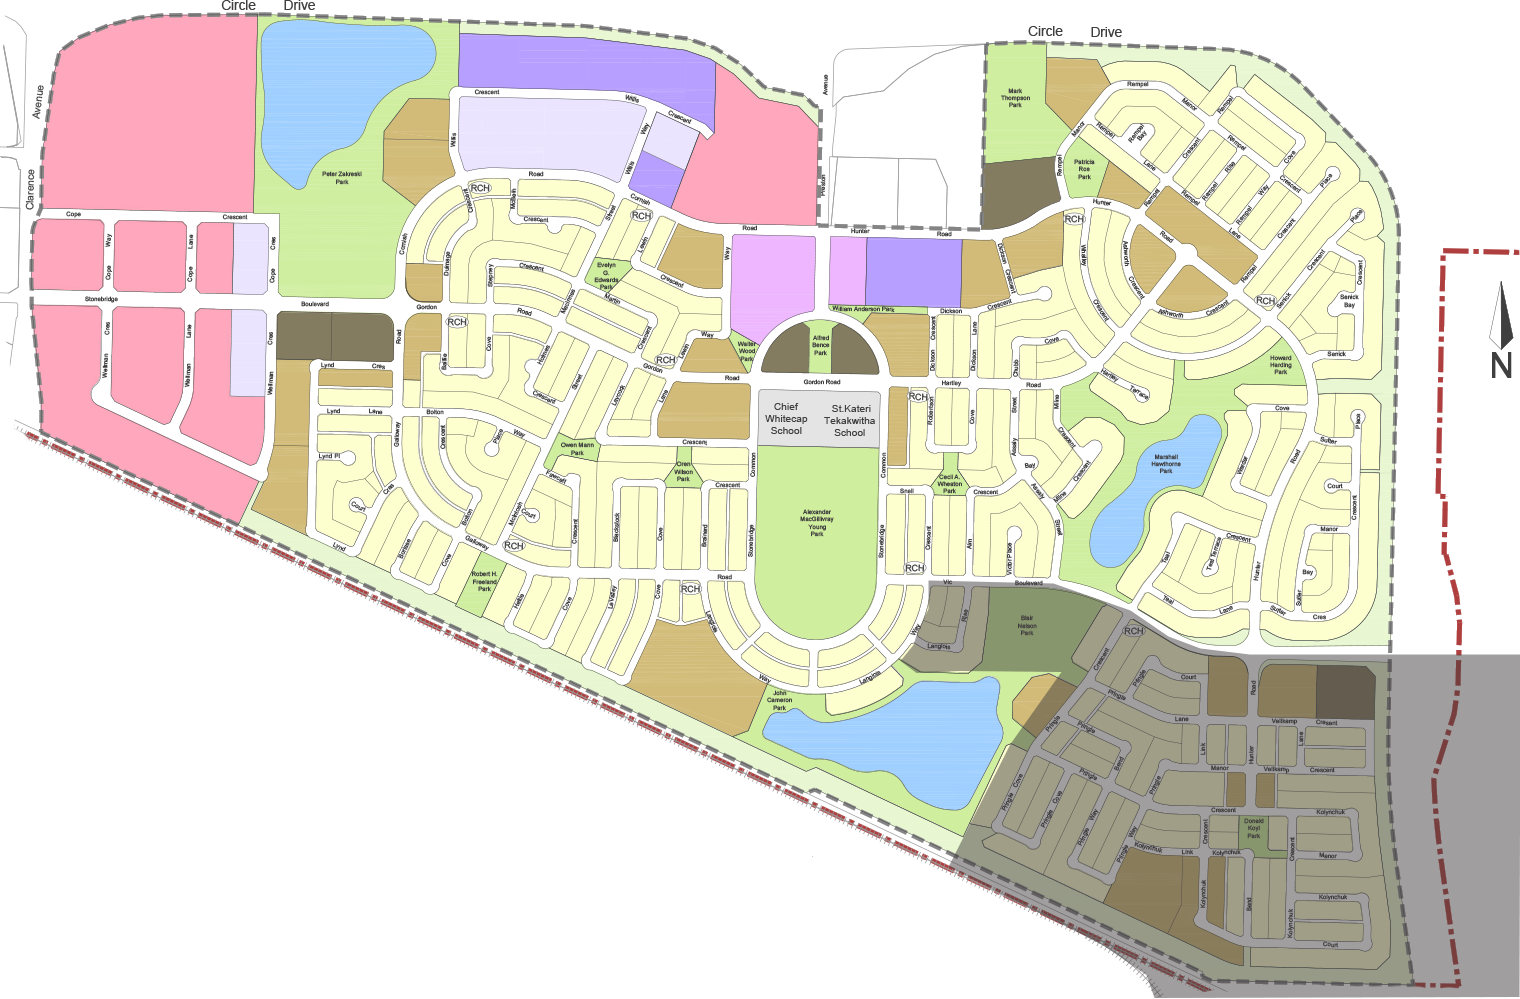 Southeast – South of Vic Boulevard, East of Langois Way and East of Alexander MacGillivary park